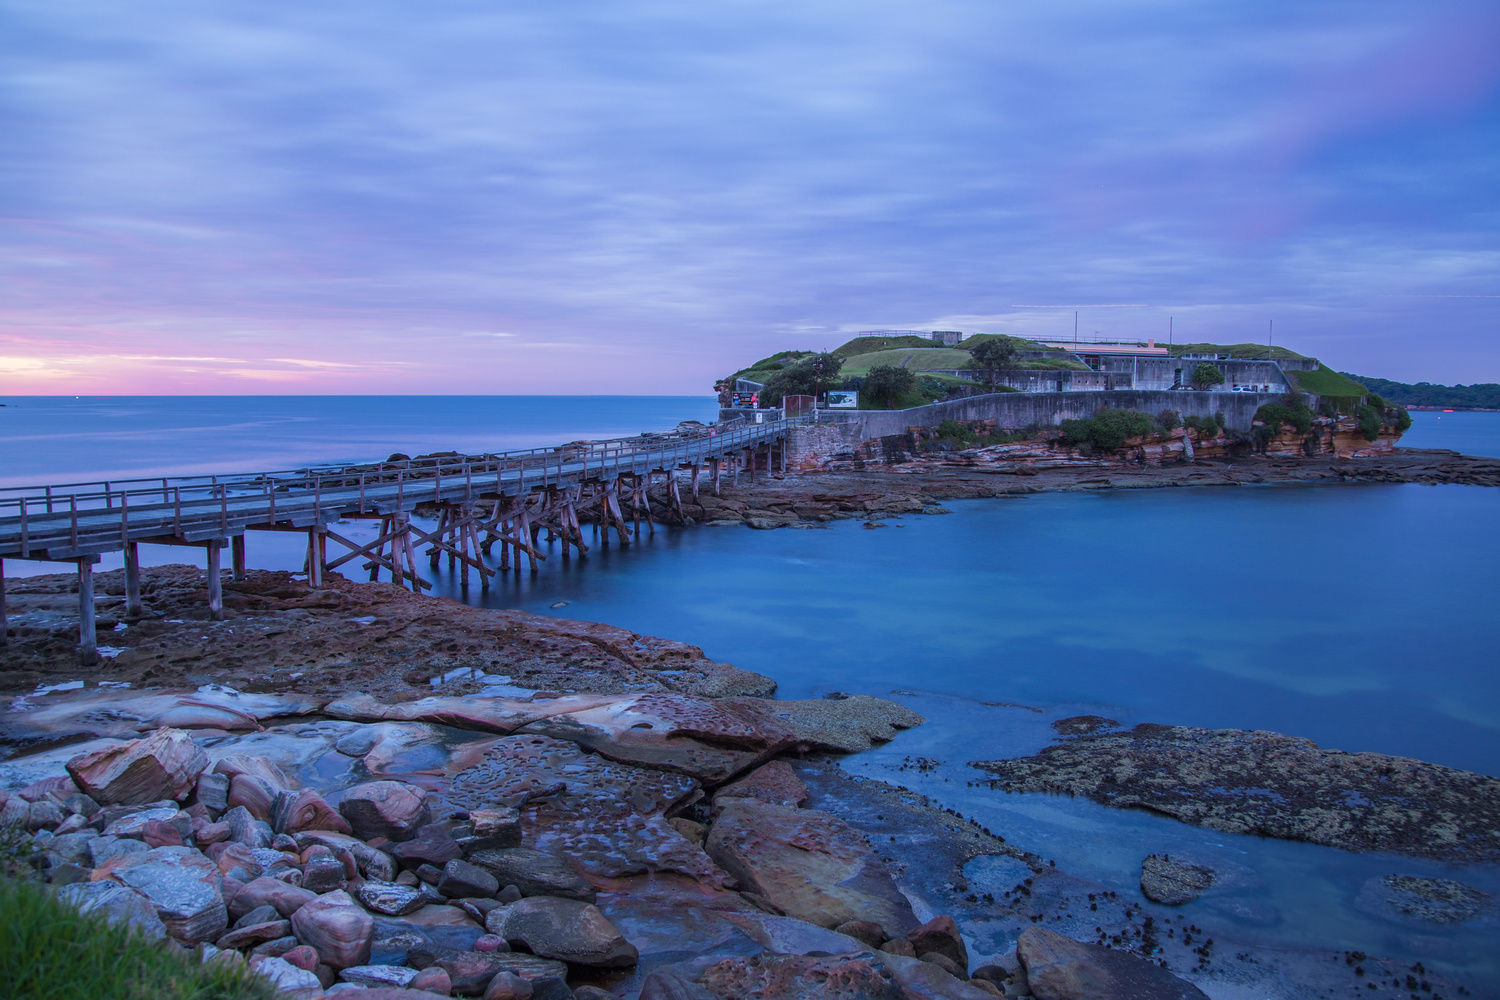 6am at La Perouse, Sydney (New South Whales) by HouseCatStudio • Fabian Artunduaga